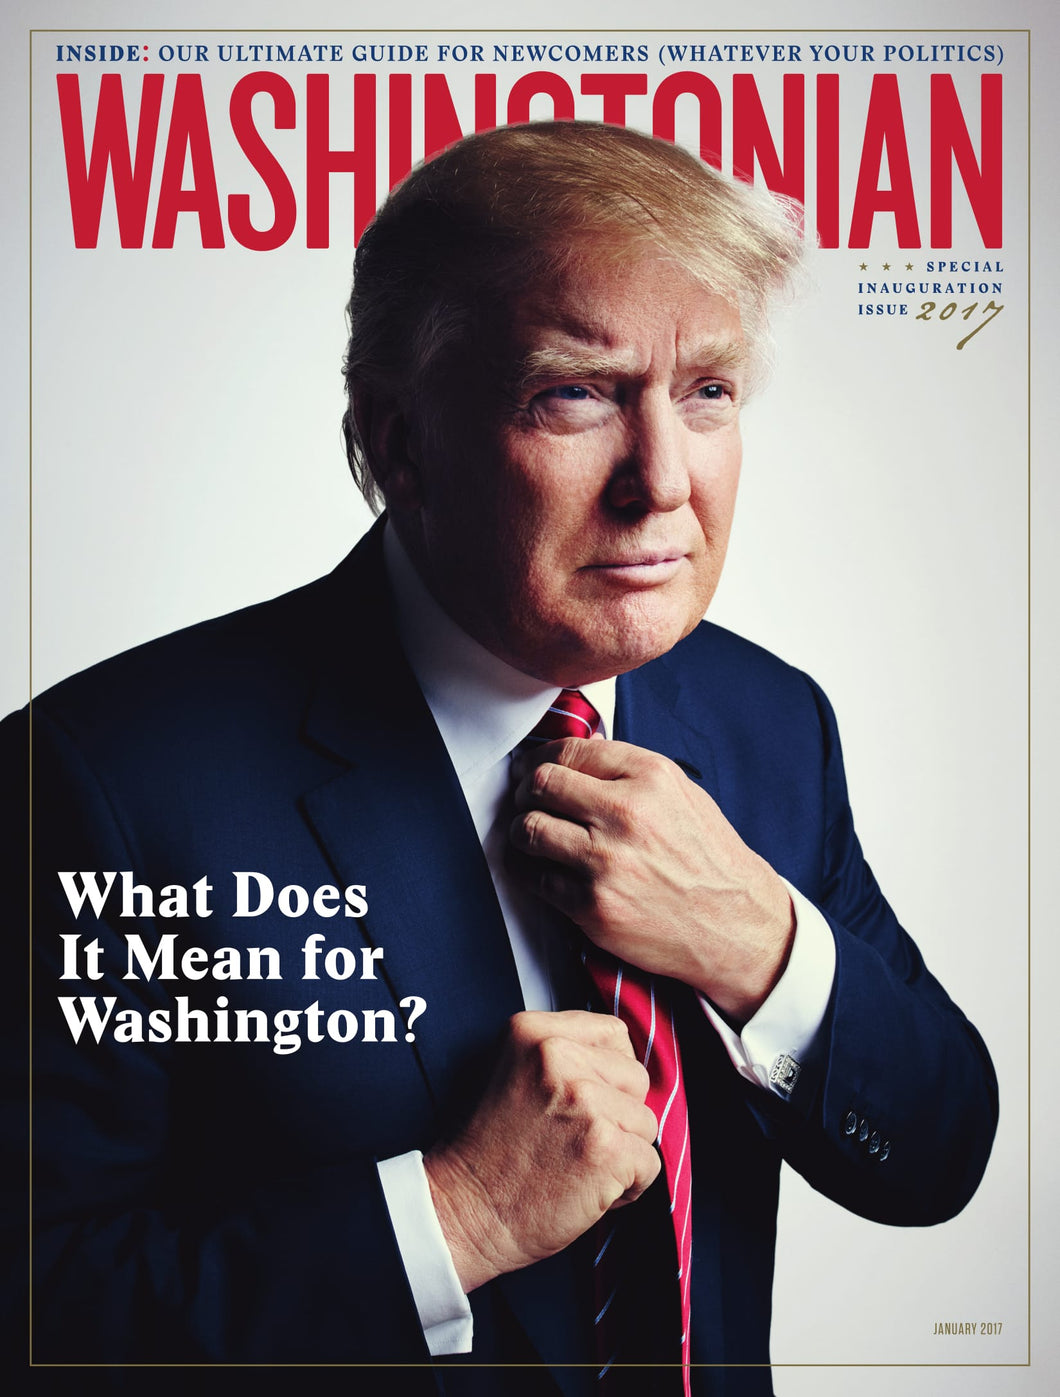 Washingtonian: January 2017 - Inauguration